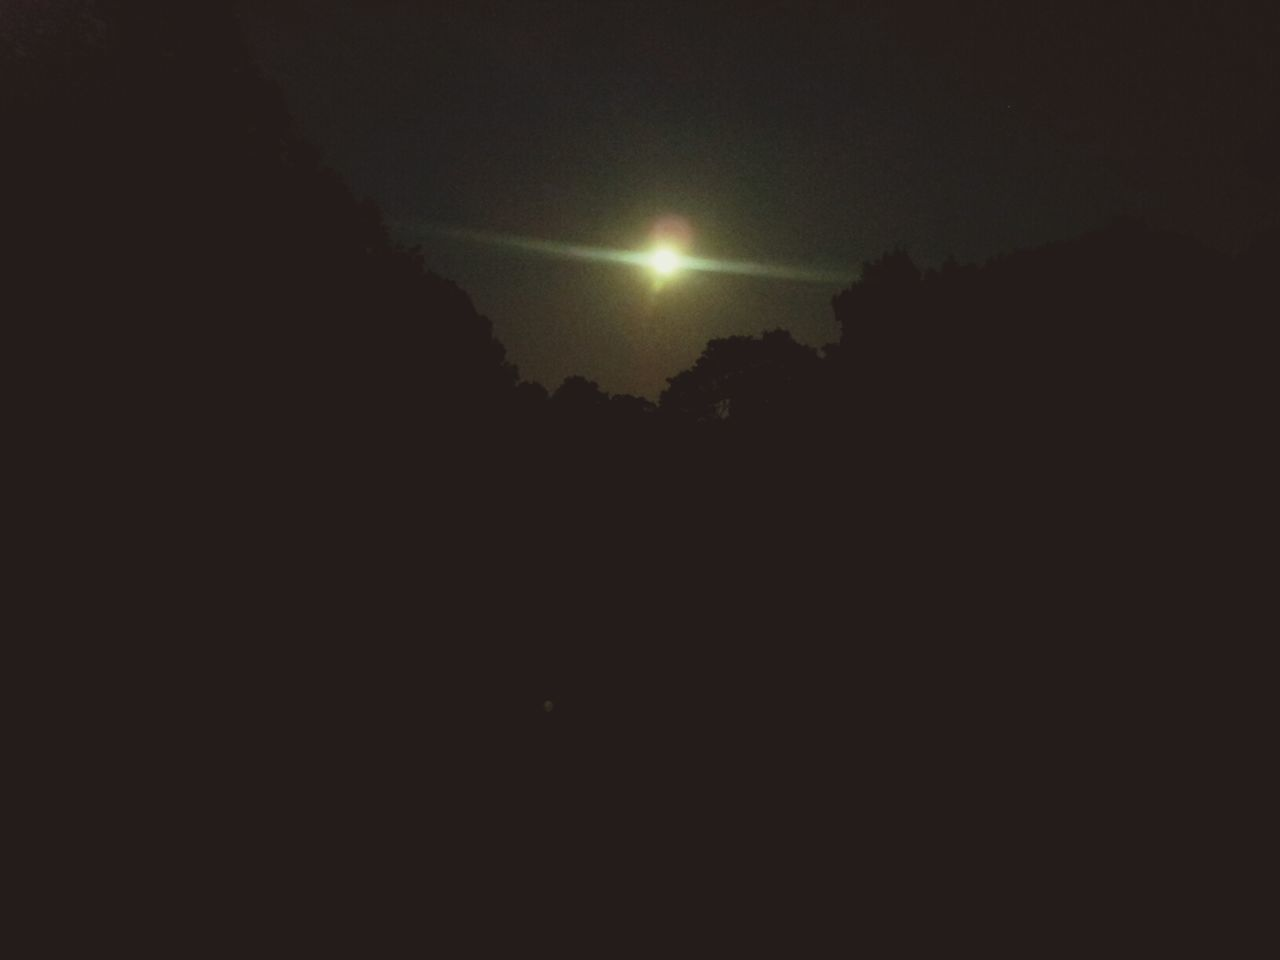 Moonlight jogging